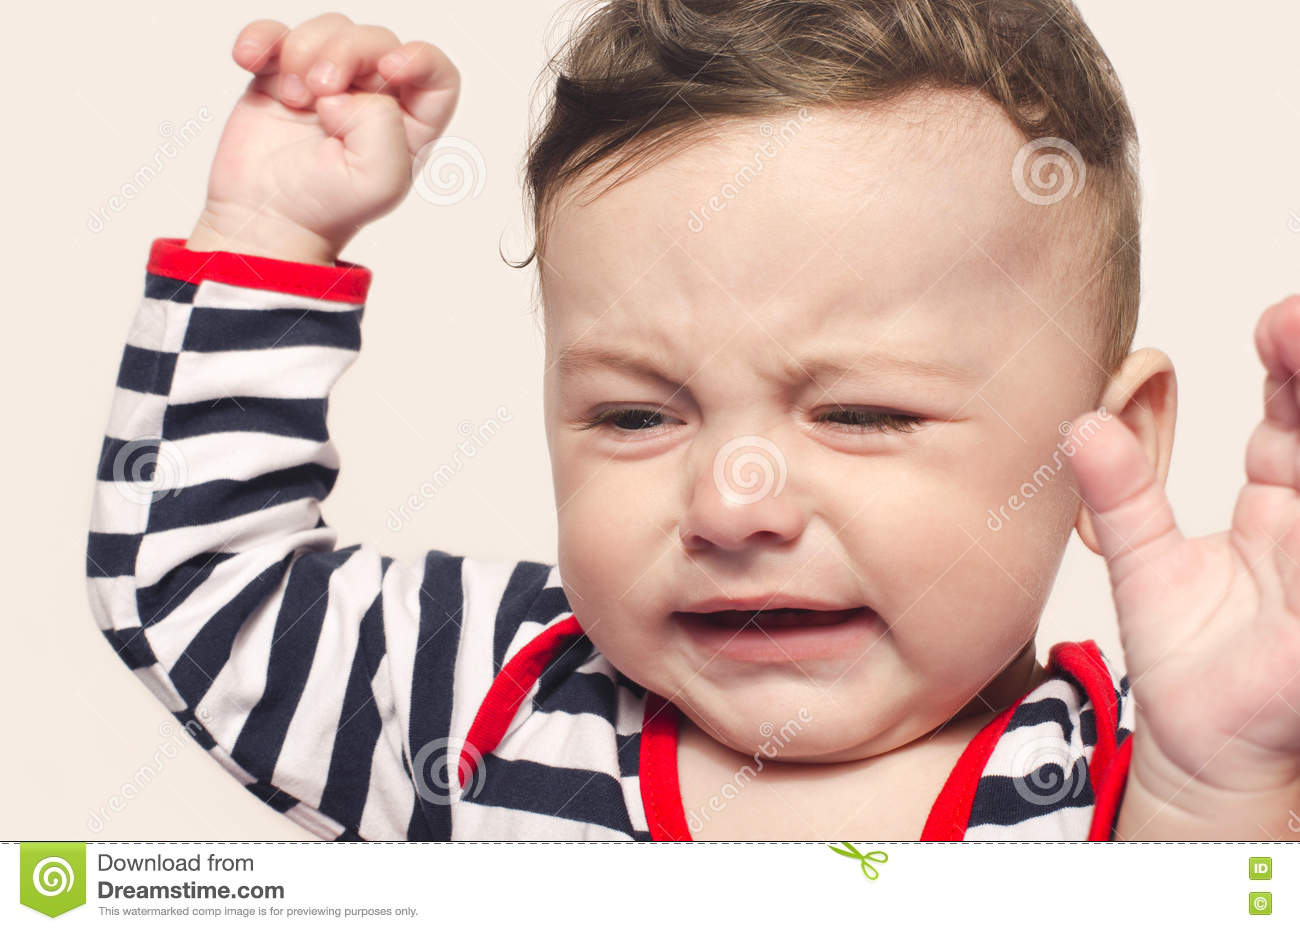 Cute Baby Boy Crying Raising His Hands Up. Stock Photo ...